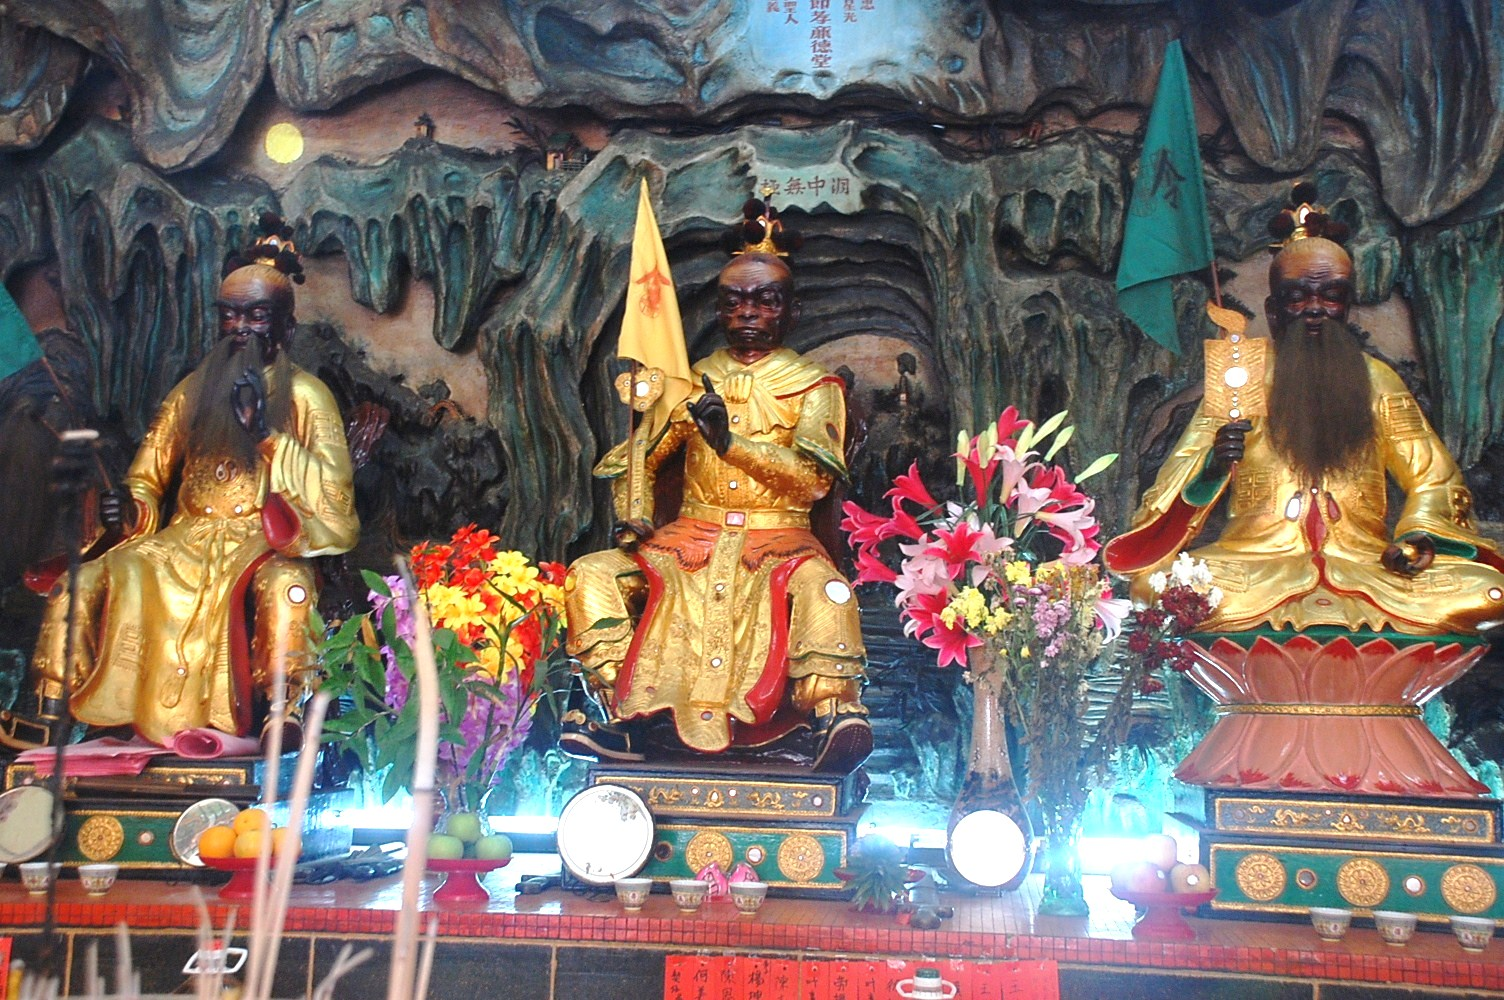 The three deities at the main altar: Wong Loo Sen See (left) represents Confucianism, the Chai Tin Dai Sing or Monkey God (centre) represents Buddhism and the Tai Siong Lou Guan (right) represents Taoism.